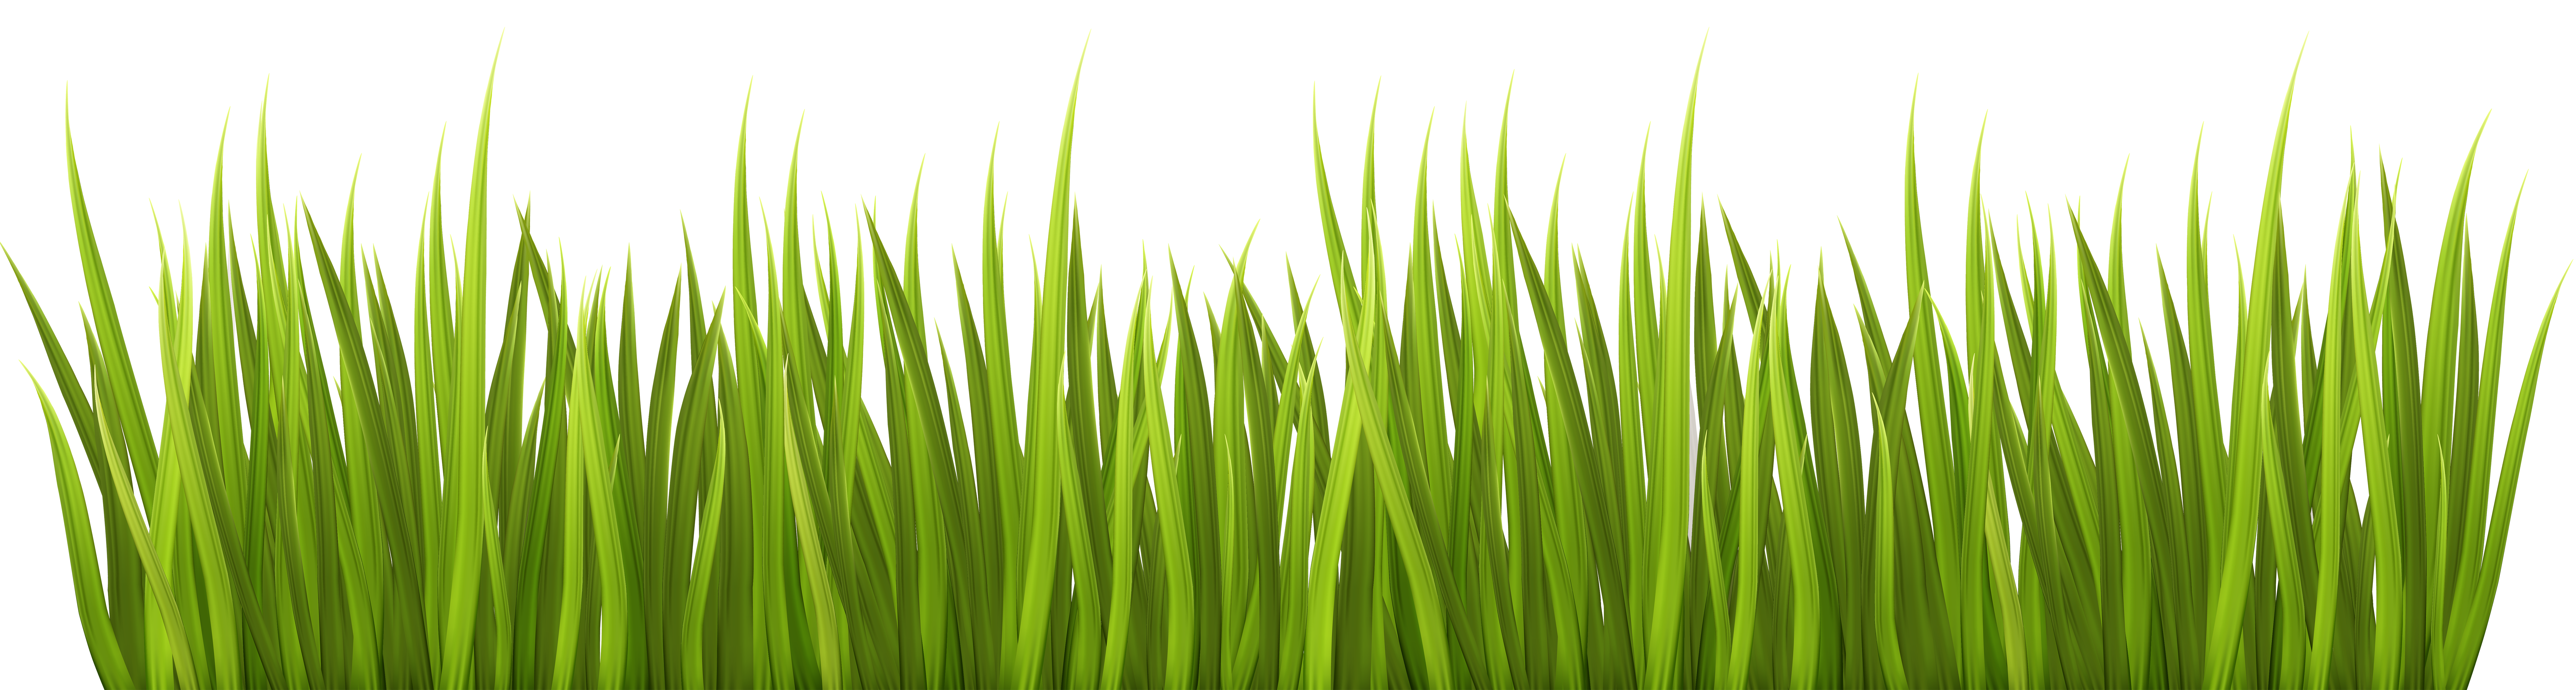 Spring transparent clip art. Grass clipart png format picture royalty free